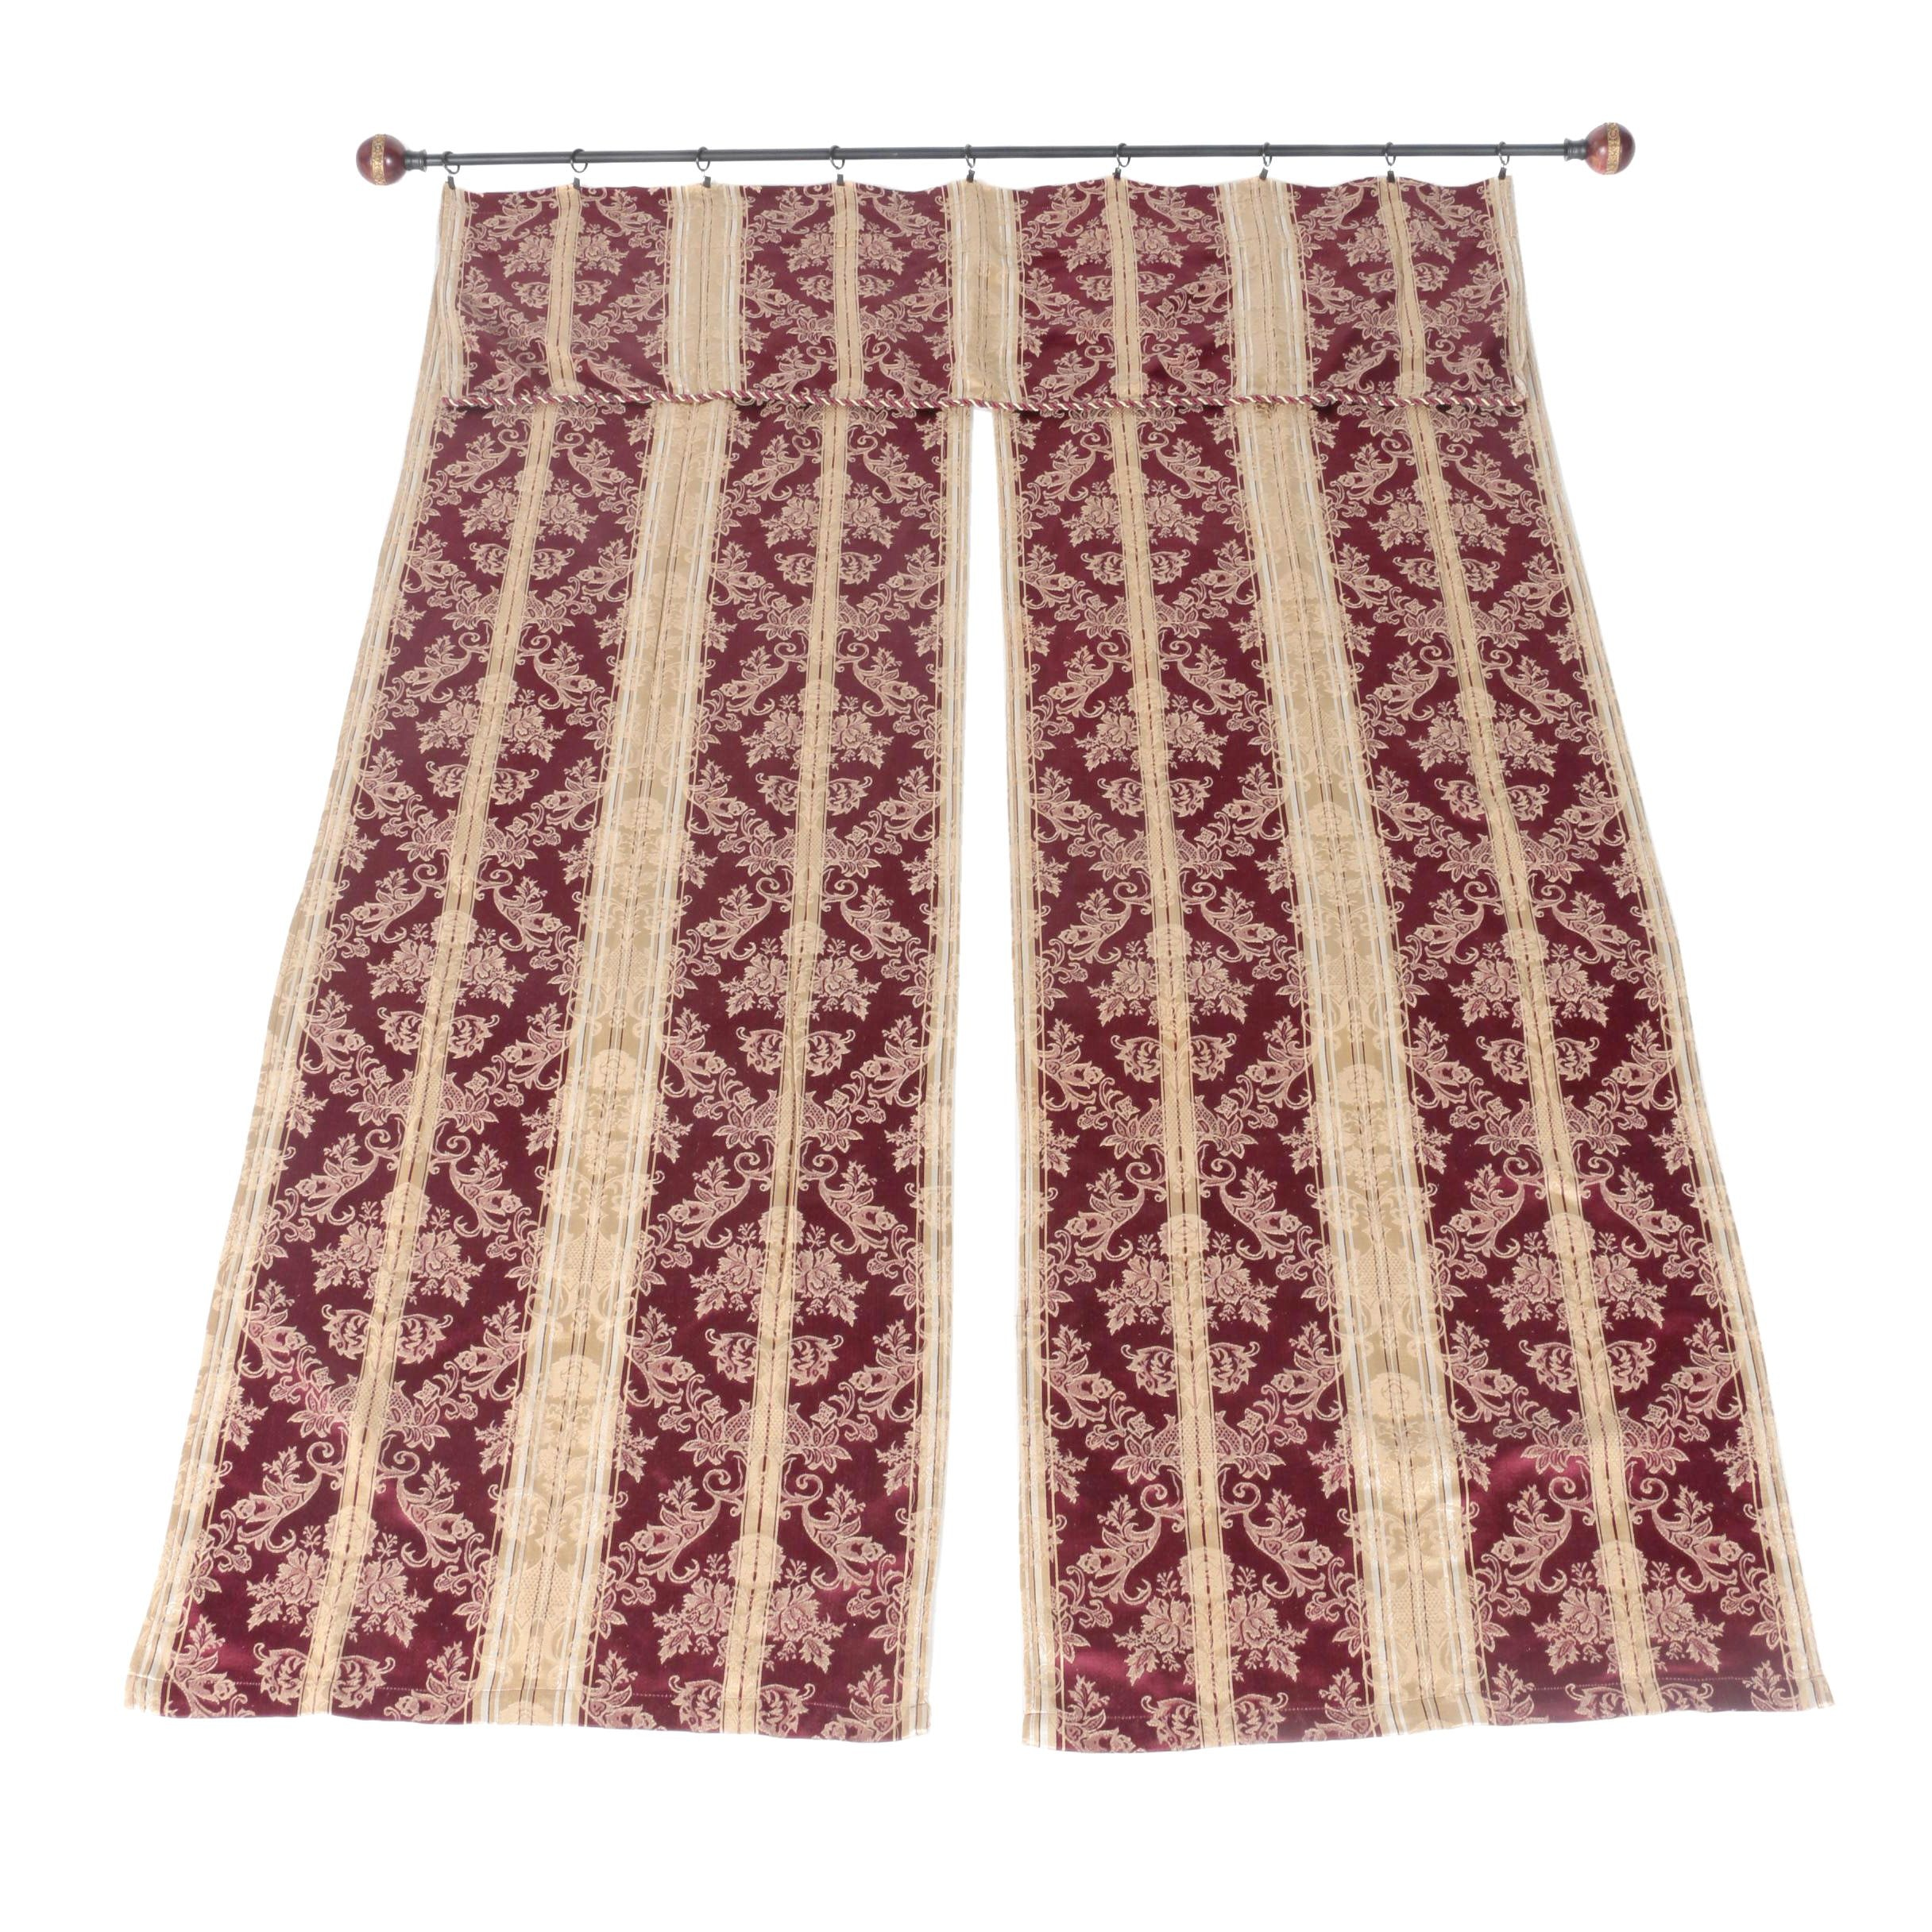 Pair of Damask Drapery Panels with Rings and Rod